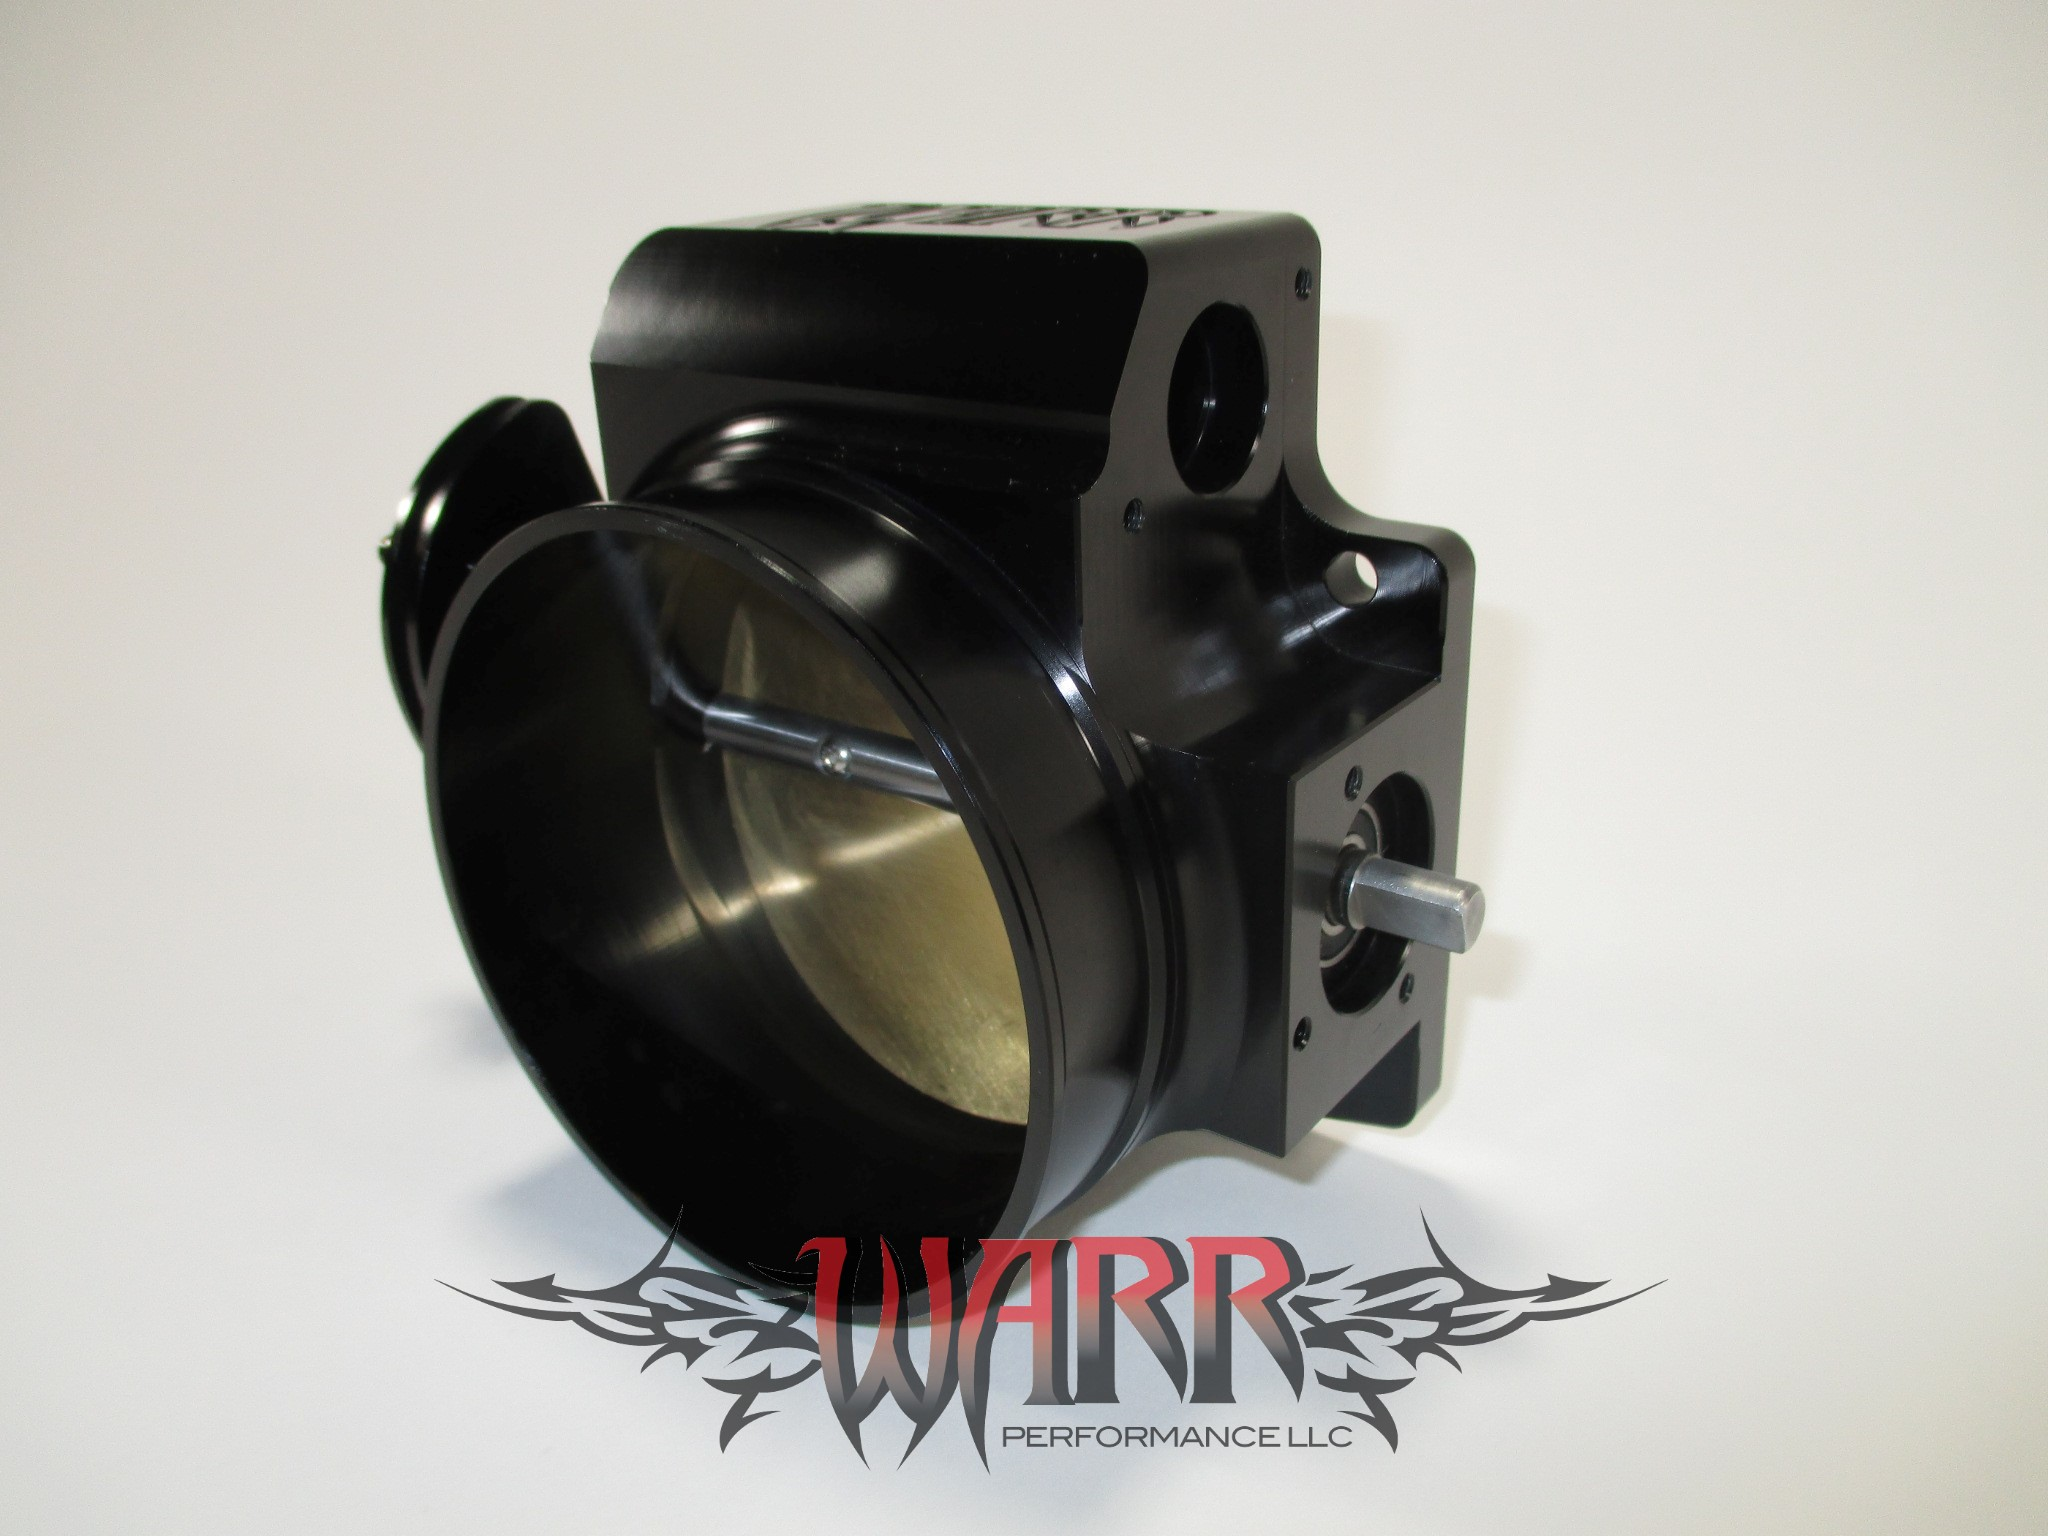 102mm Throttle Body LS1 LS2 LS3 LSX Alum.- No Vent Tube WARR Performance